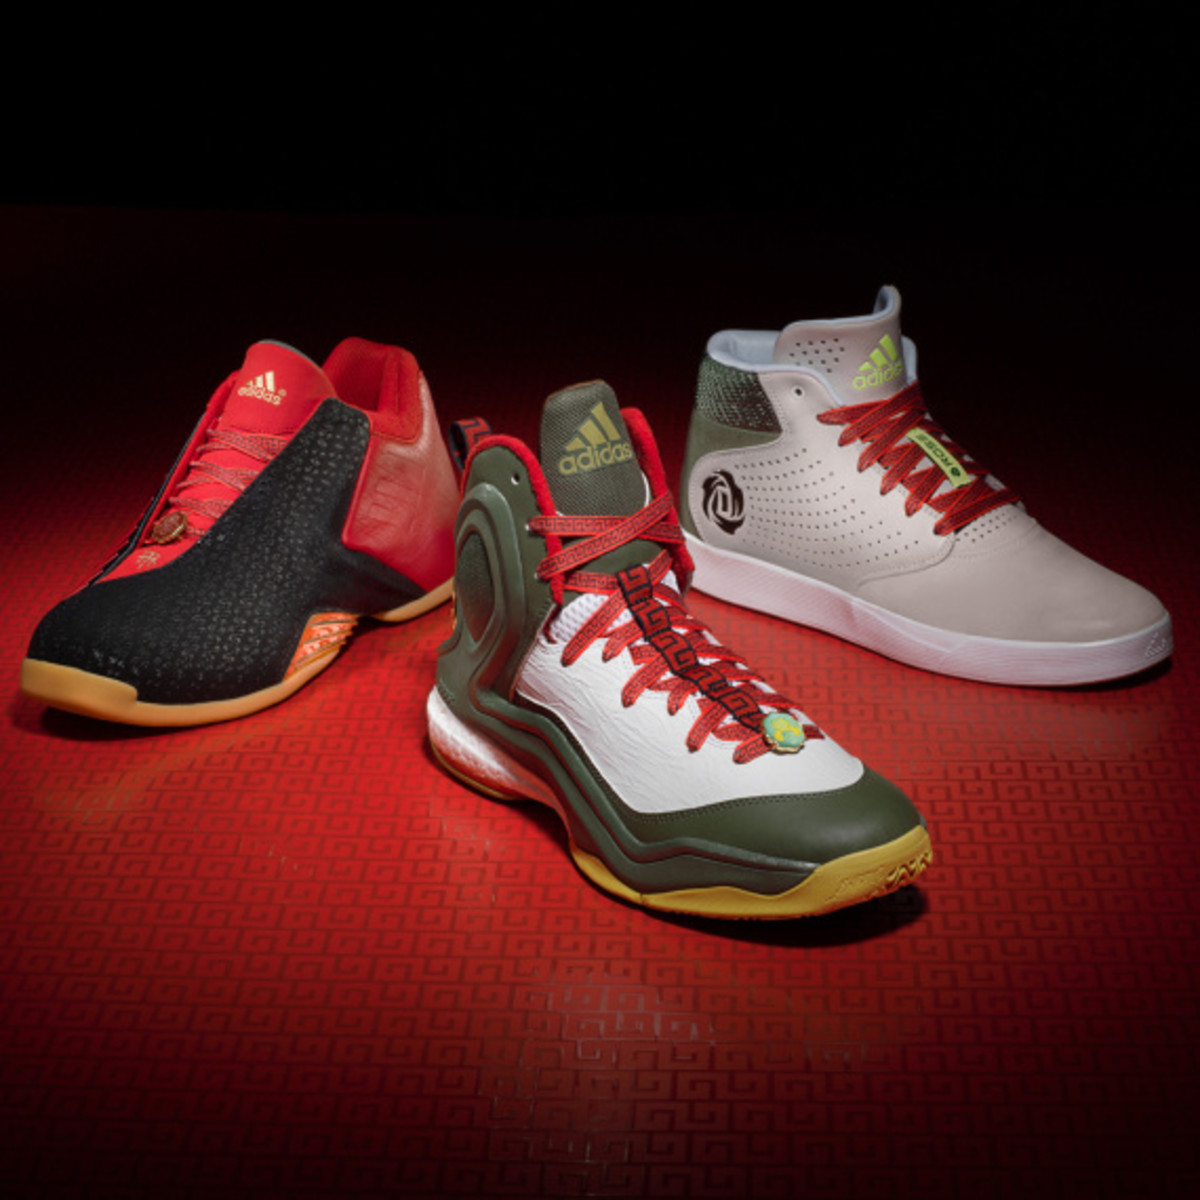 adidas-basketball-year-of-the-goat-collection-08